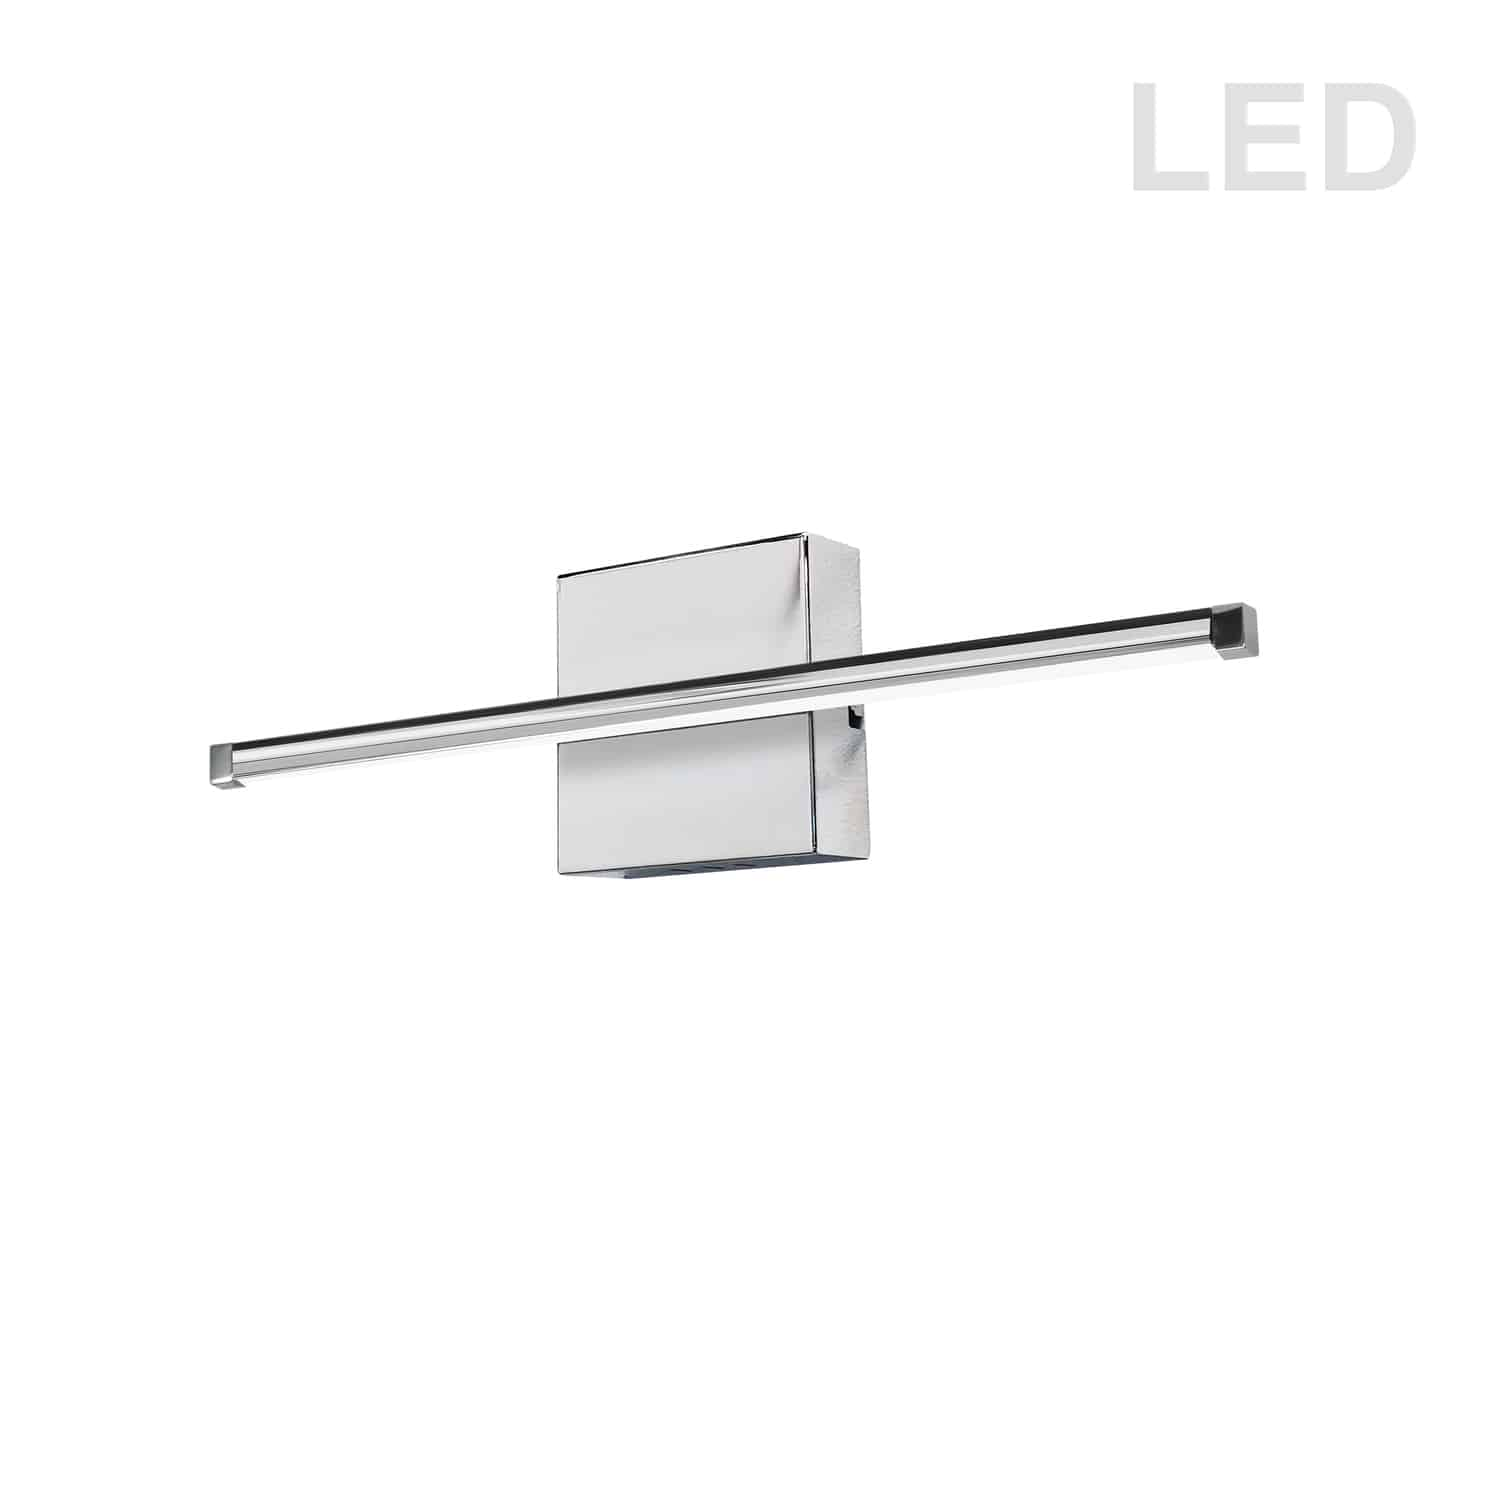 19W LED Wall Sconce, Polished Chrome with White Acrylic Diffuser